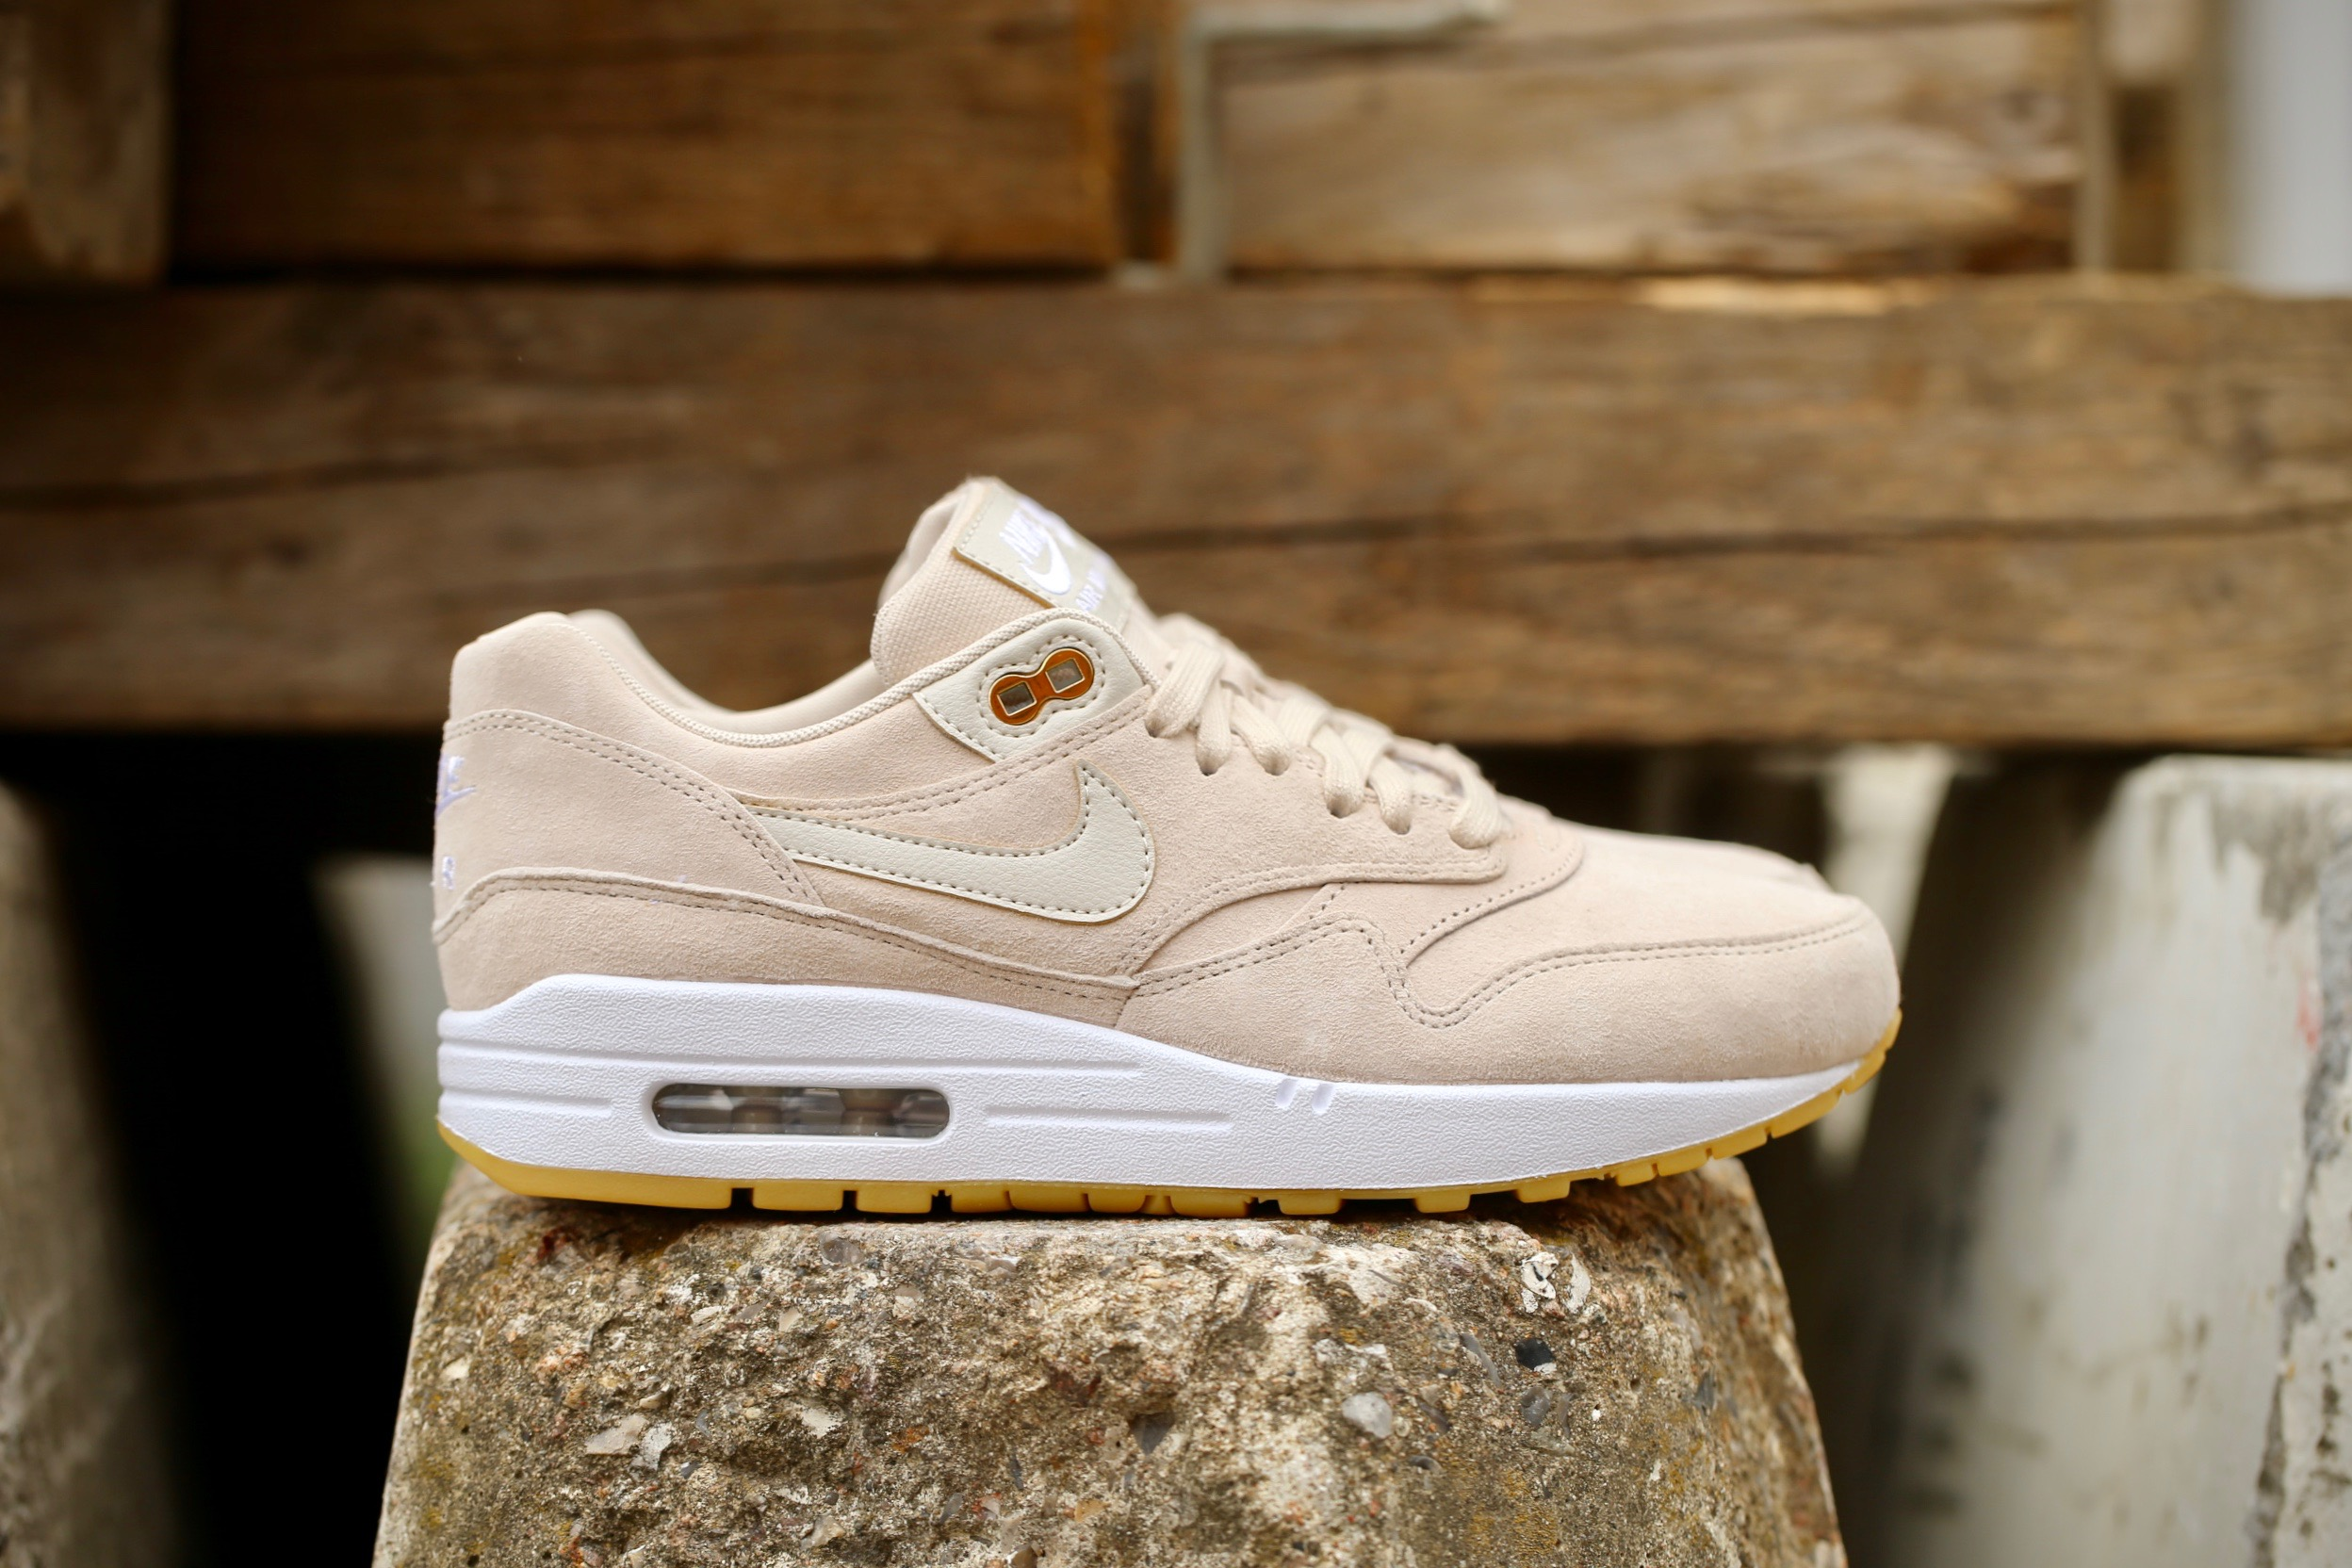 brand new 063df 4bea0 Nike Wmns Air Max 1 SD – Oatmeal / White / Gum Light Brown – STASP